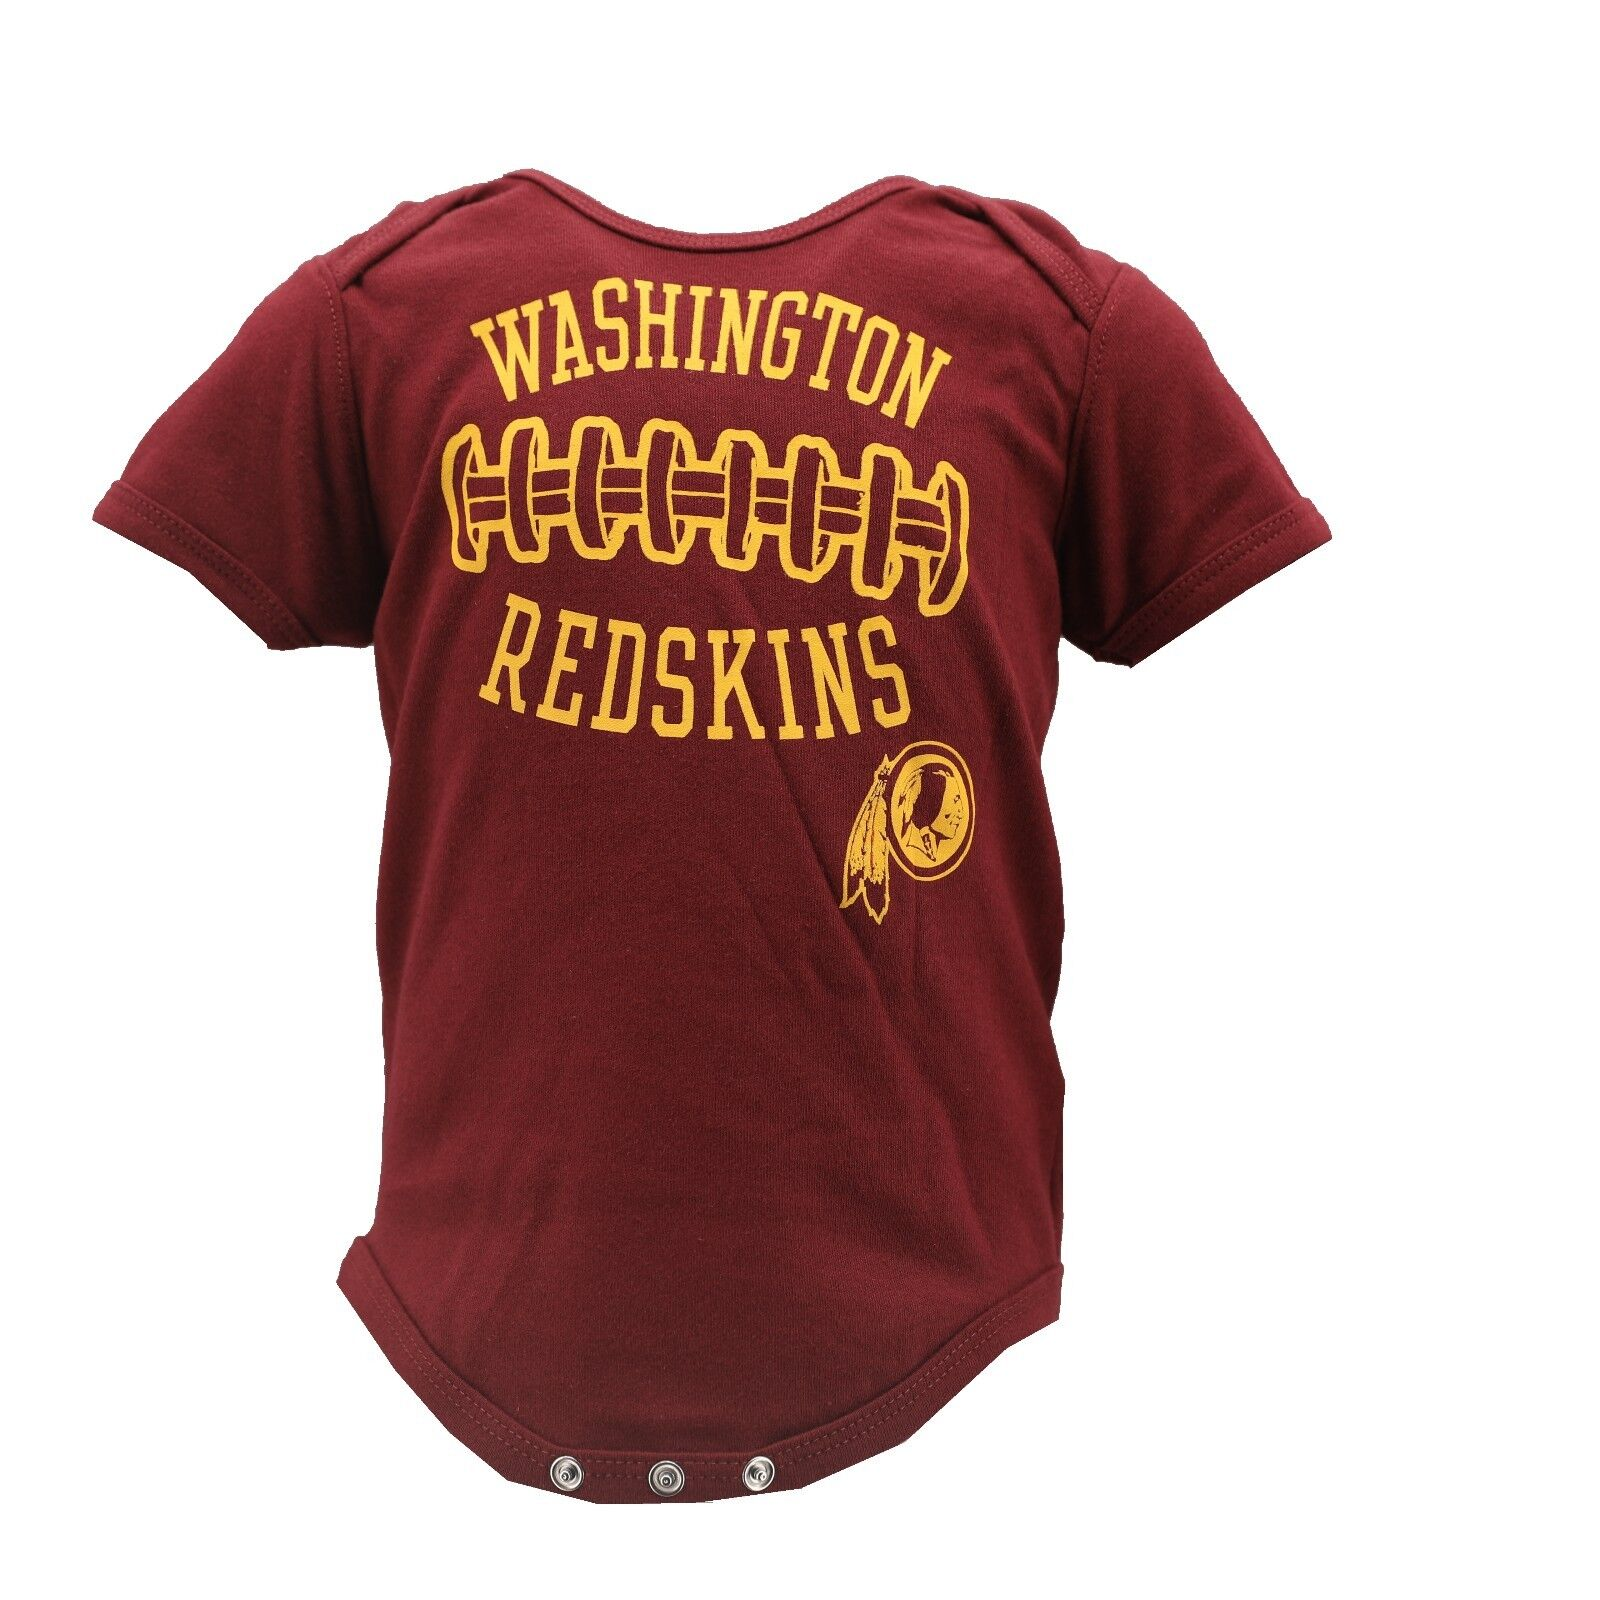 Washington Redskins NFL Official Apparel Infant Baby Creeper Bodysuit New  Tags 013012931